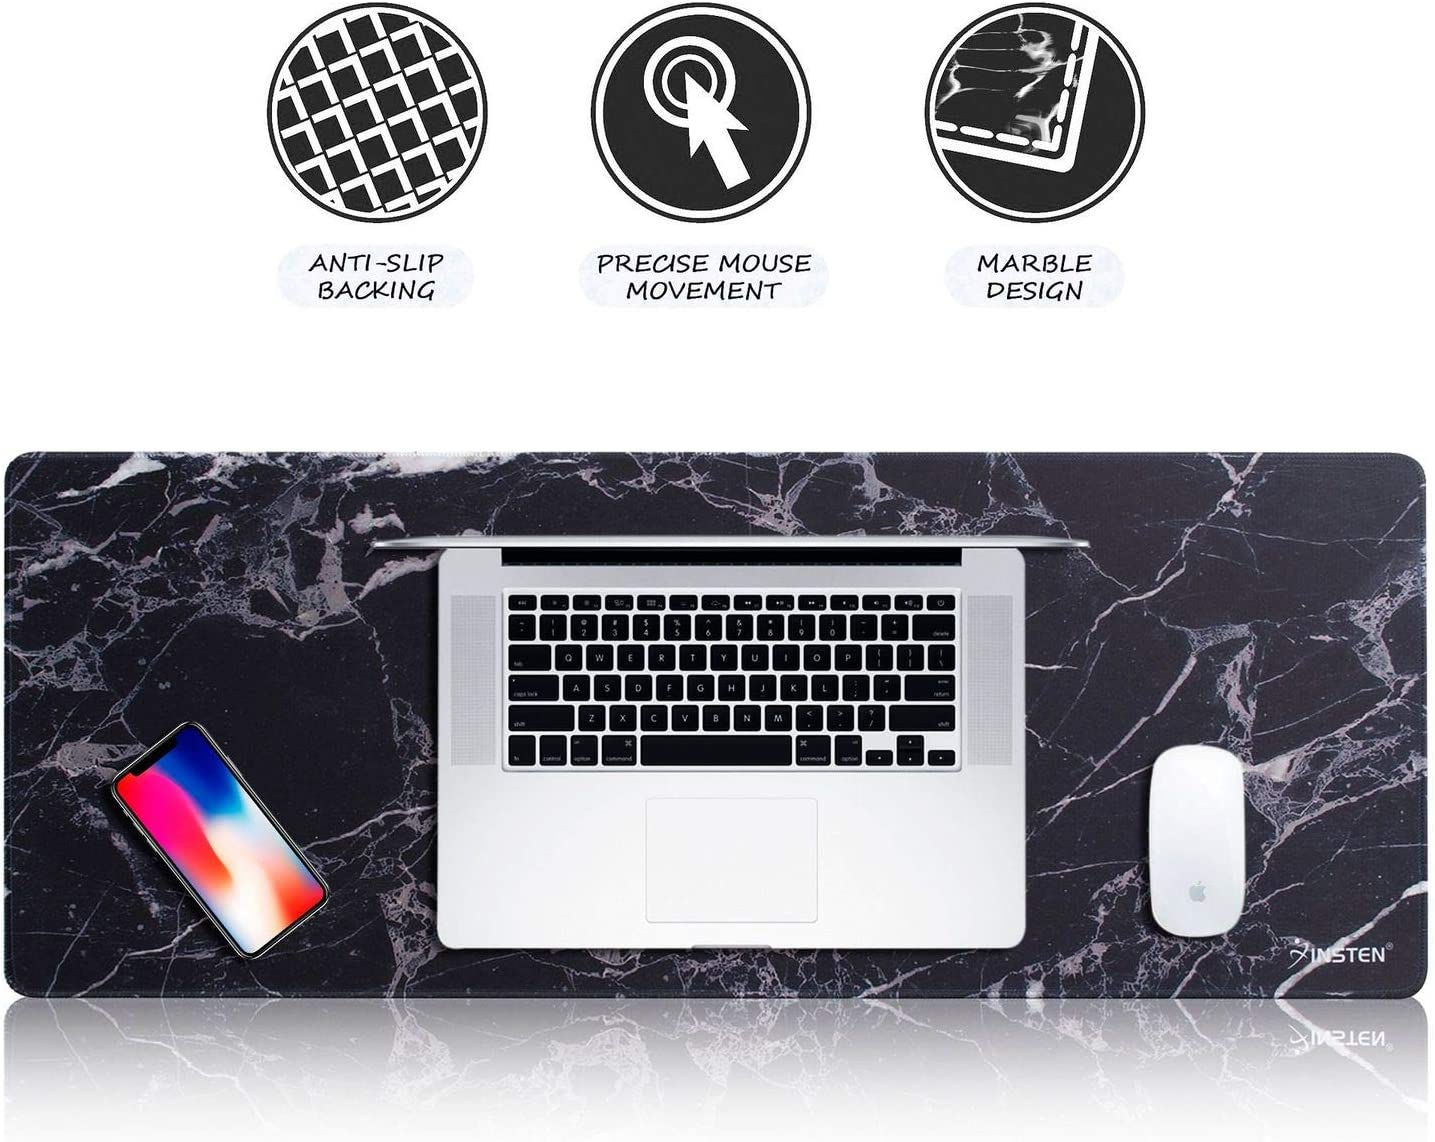 "Insten Extra Large Mouse Pad, Marble Extended Computer Mouse Pad XL XXL for Desktop, with Waterproof Coating, Non-Slip Base, Silky Smooth Surface, Durable Stitched Edges - 31.5"" X 12"", Black Marble"